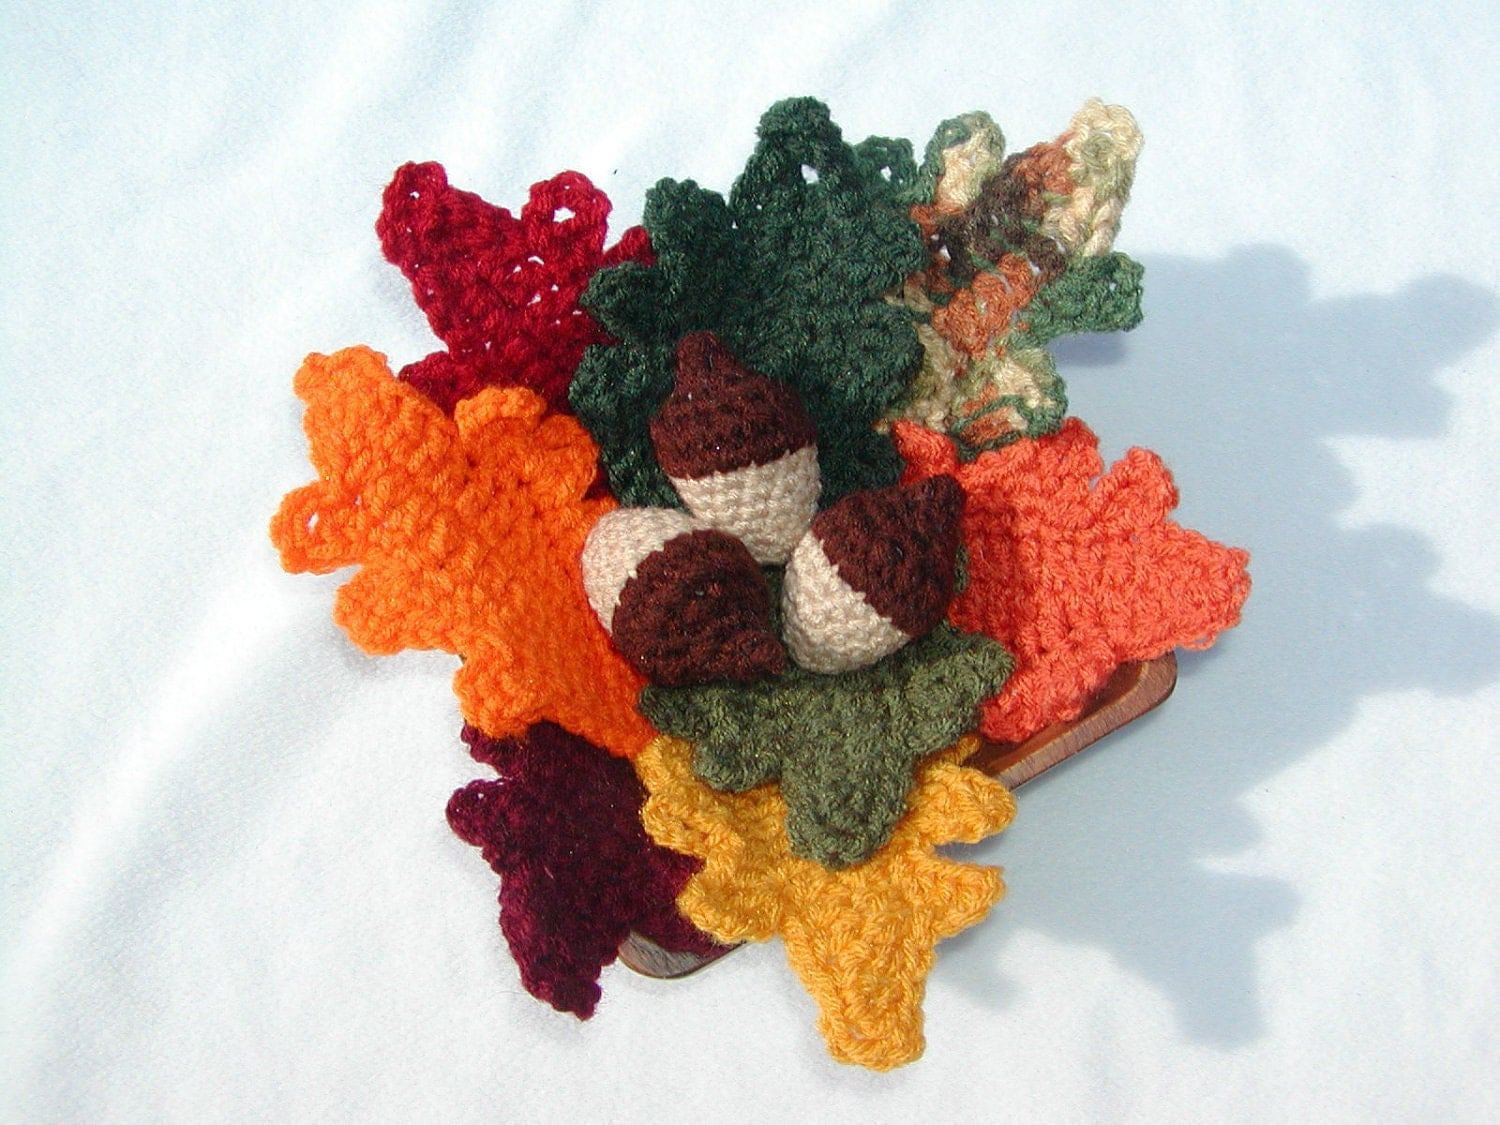 Crocheted Fall Leaves and Acorn Group - honeybee69